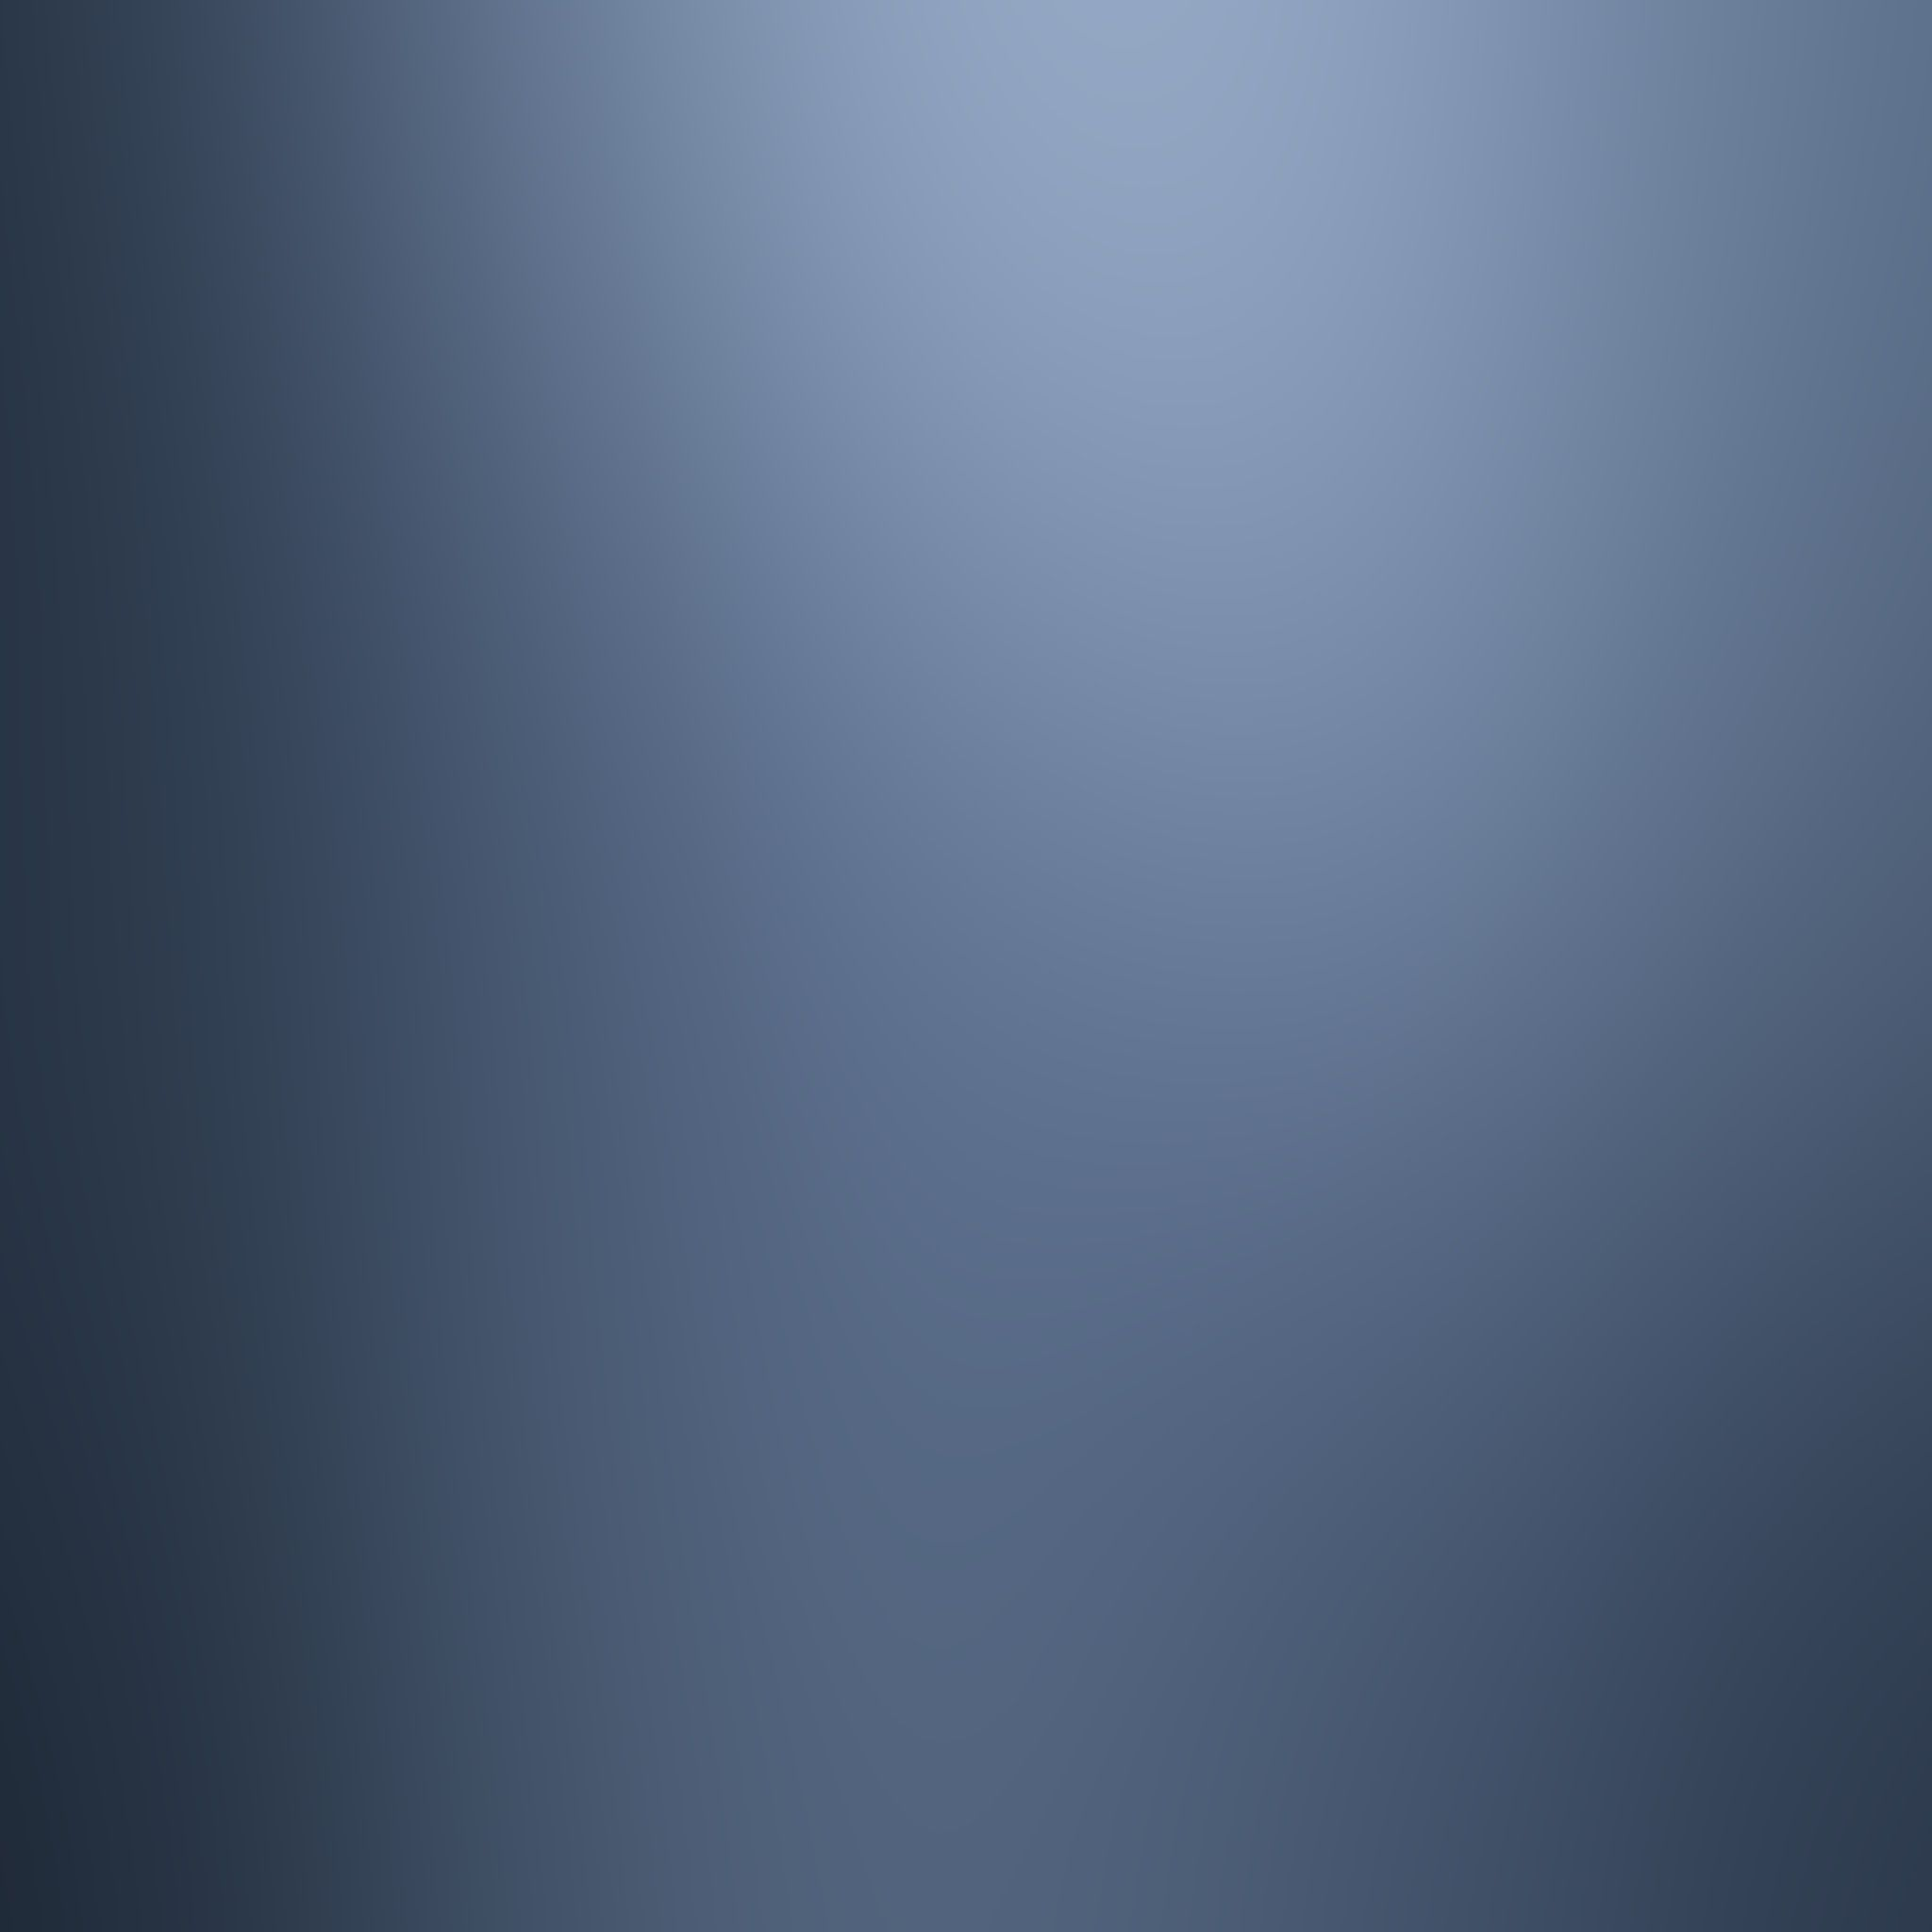 3d Parallax Wallpapers Androod Smooth Navy Gray Ios7 Ipad Wallpaper Hd Ipad Wallpaper